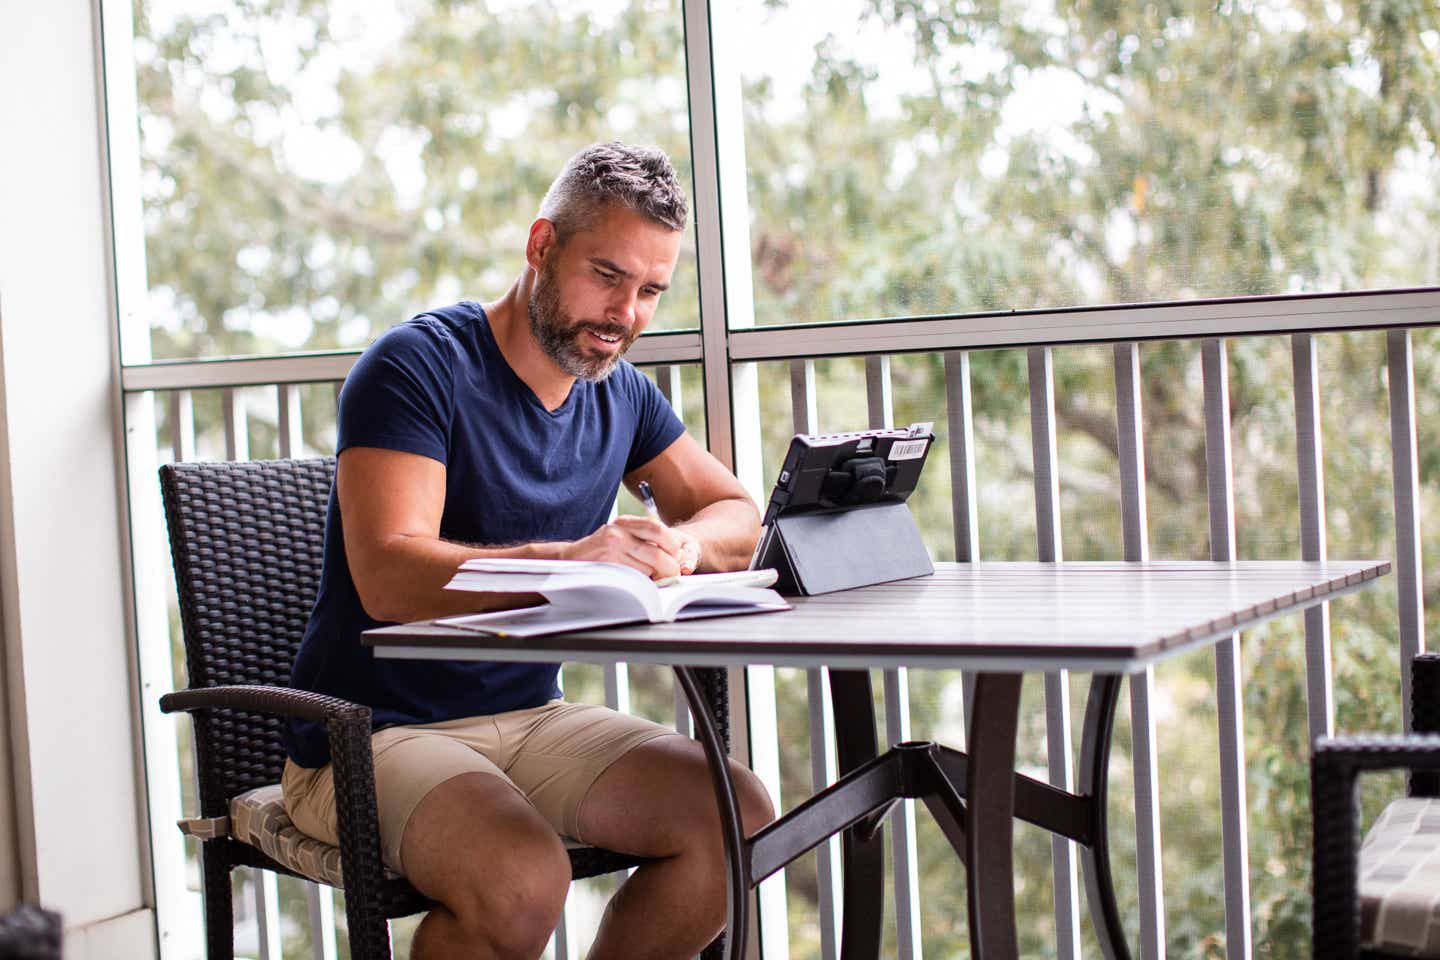 Brenda Rivera Sterns' husband, Isaiah, works remotely on the patio of our Signature Collection villa at our South Beach Resort in Myrtle Beach, South Carolina.